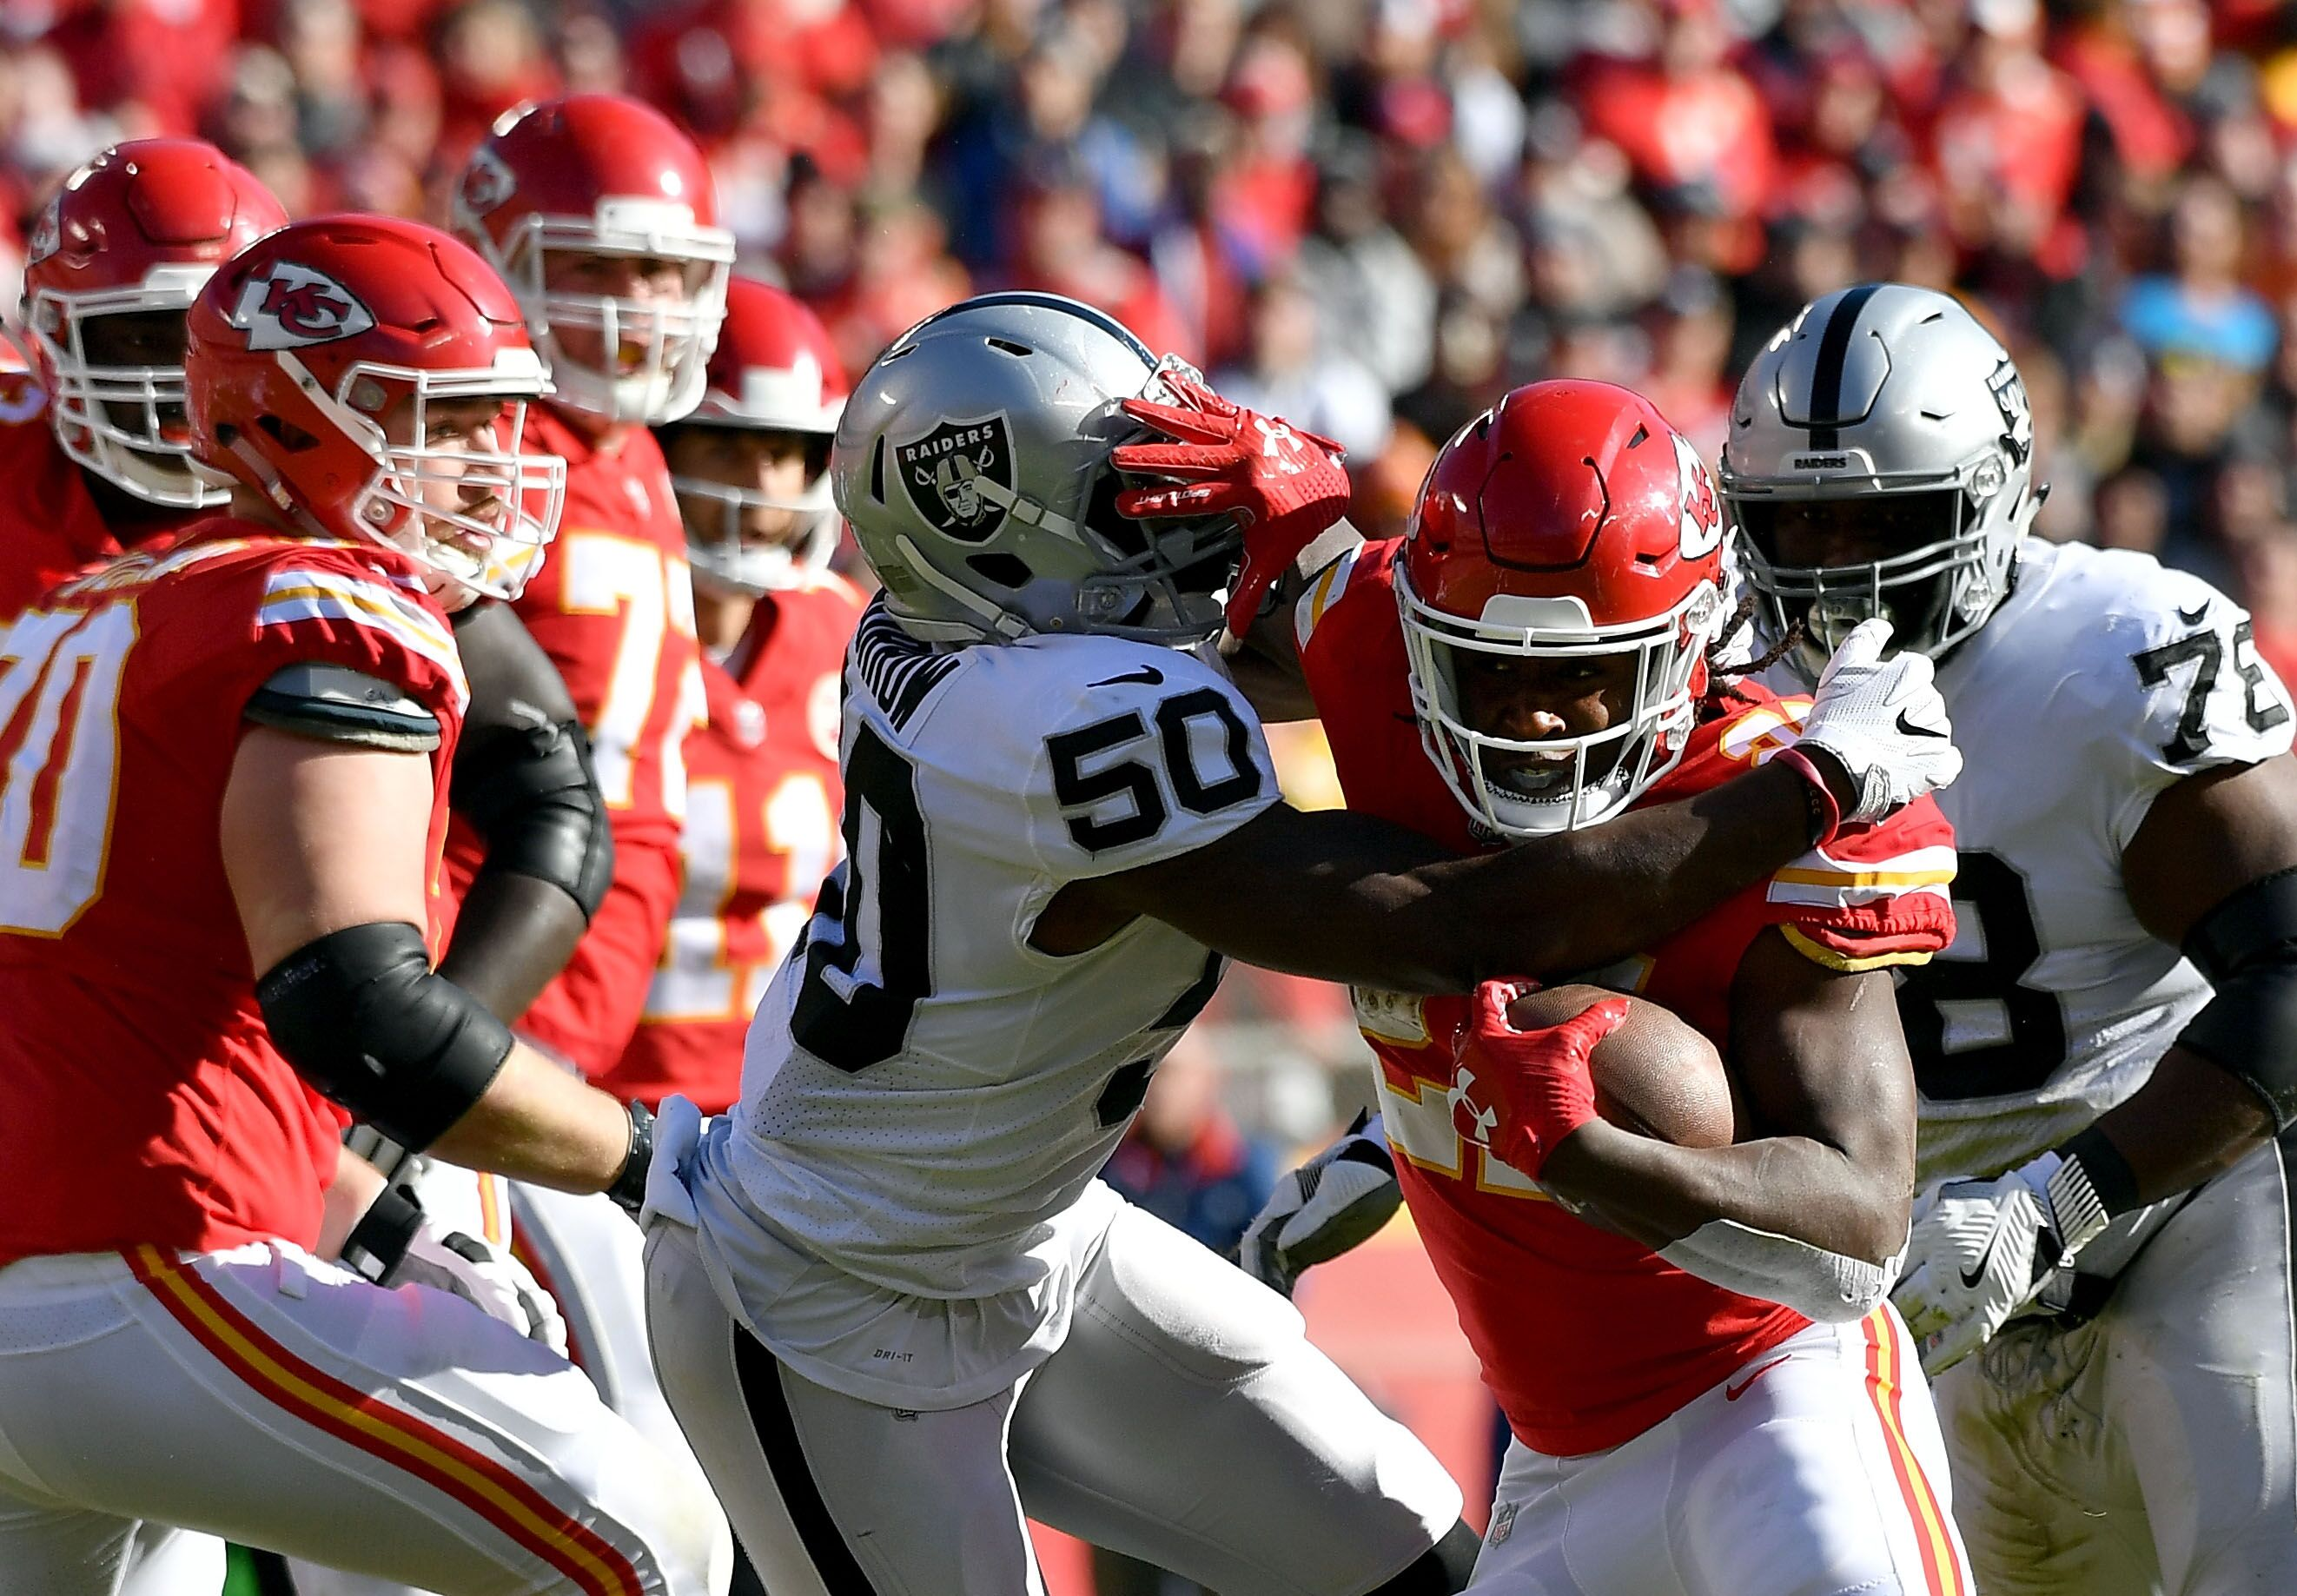 new concept 3cc9d 4c8f8 Raiders drop huge rivalry game to Chiefs, 26-15  Highlights, recap